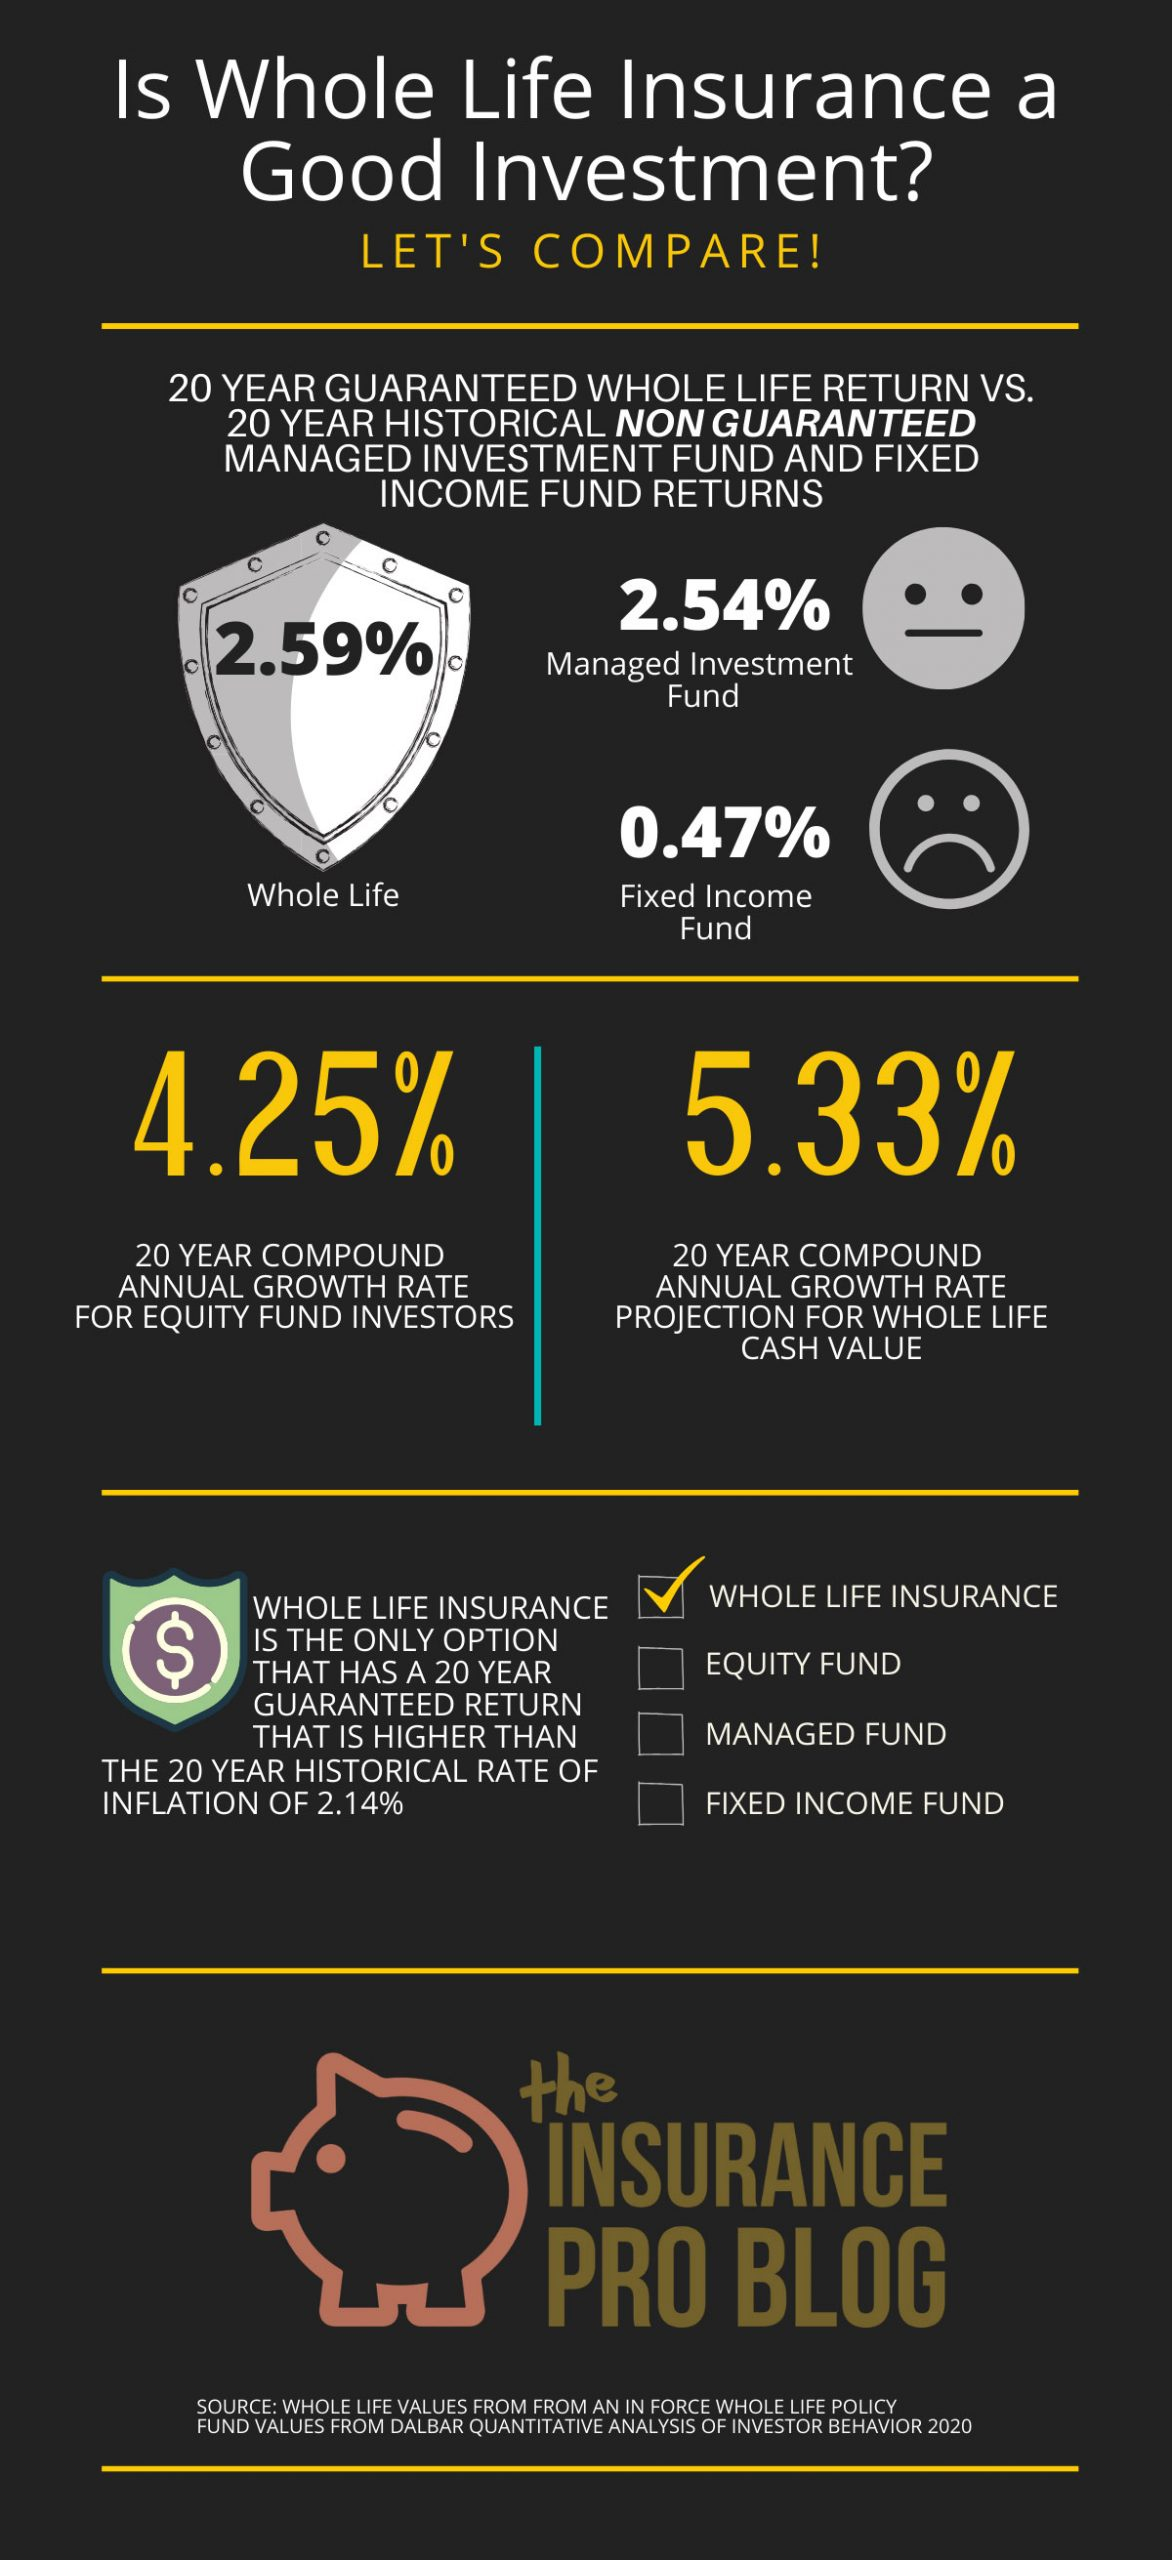 Is Whole Life Insurance a Good Investment Infographic